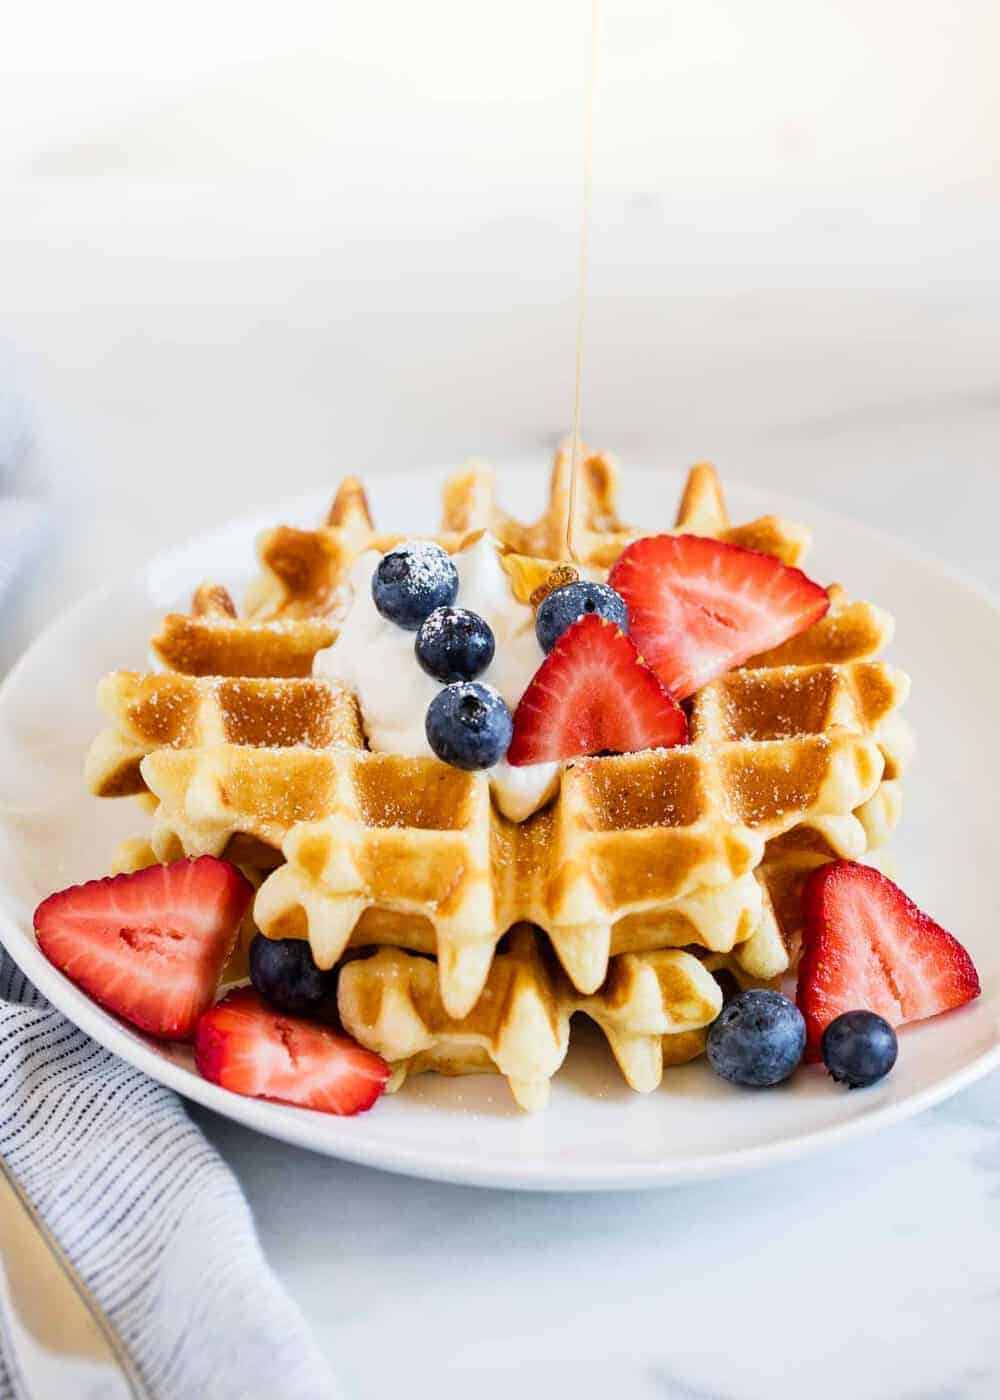 belgian waffle with berries on a white plate and syrup being poured